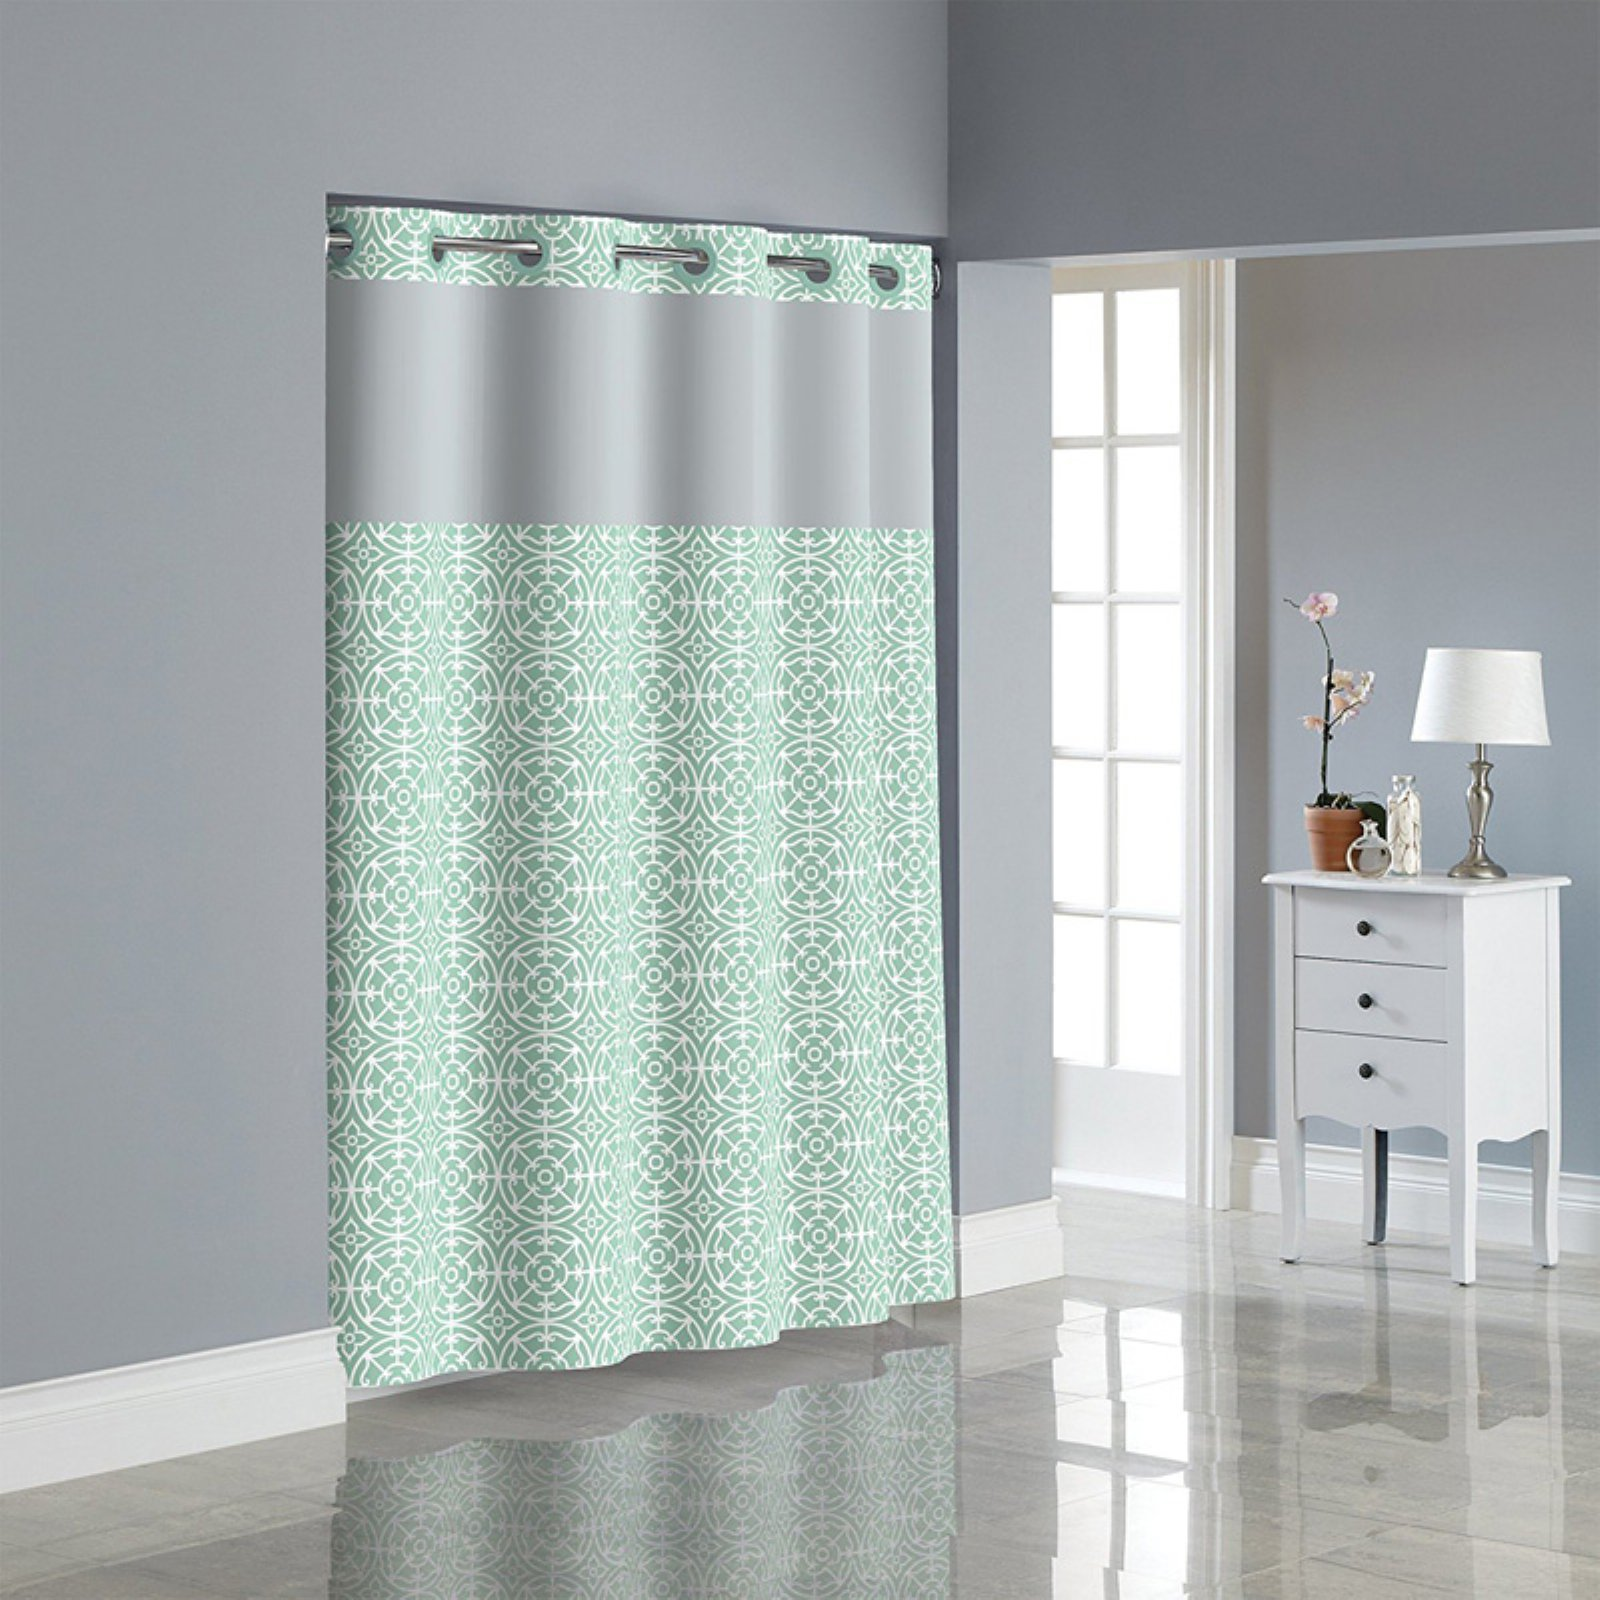 Kohls Shower Curtains Hookless